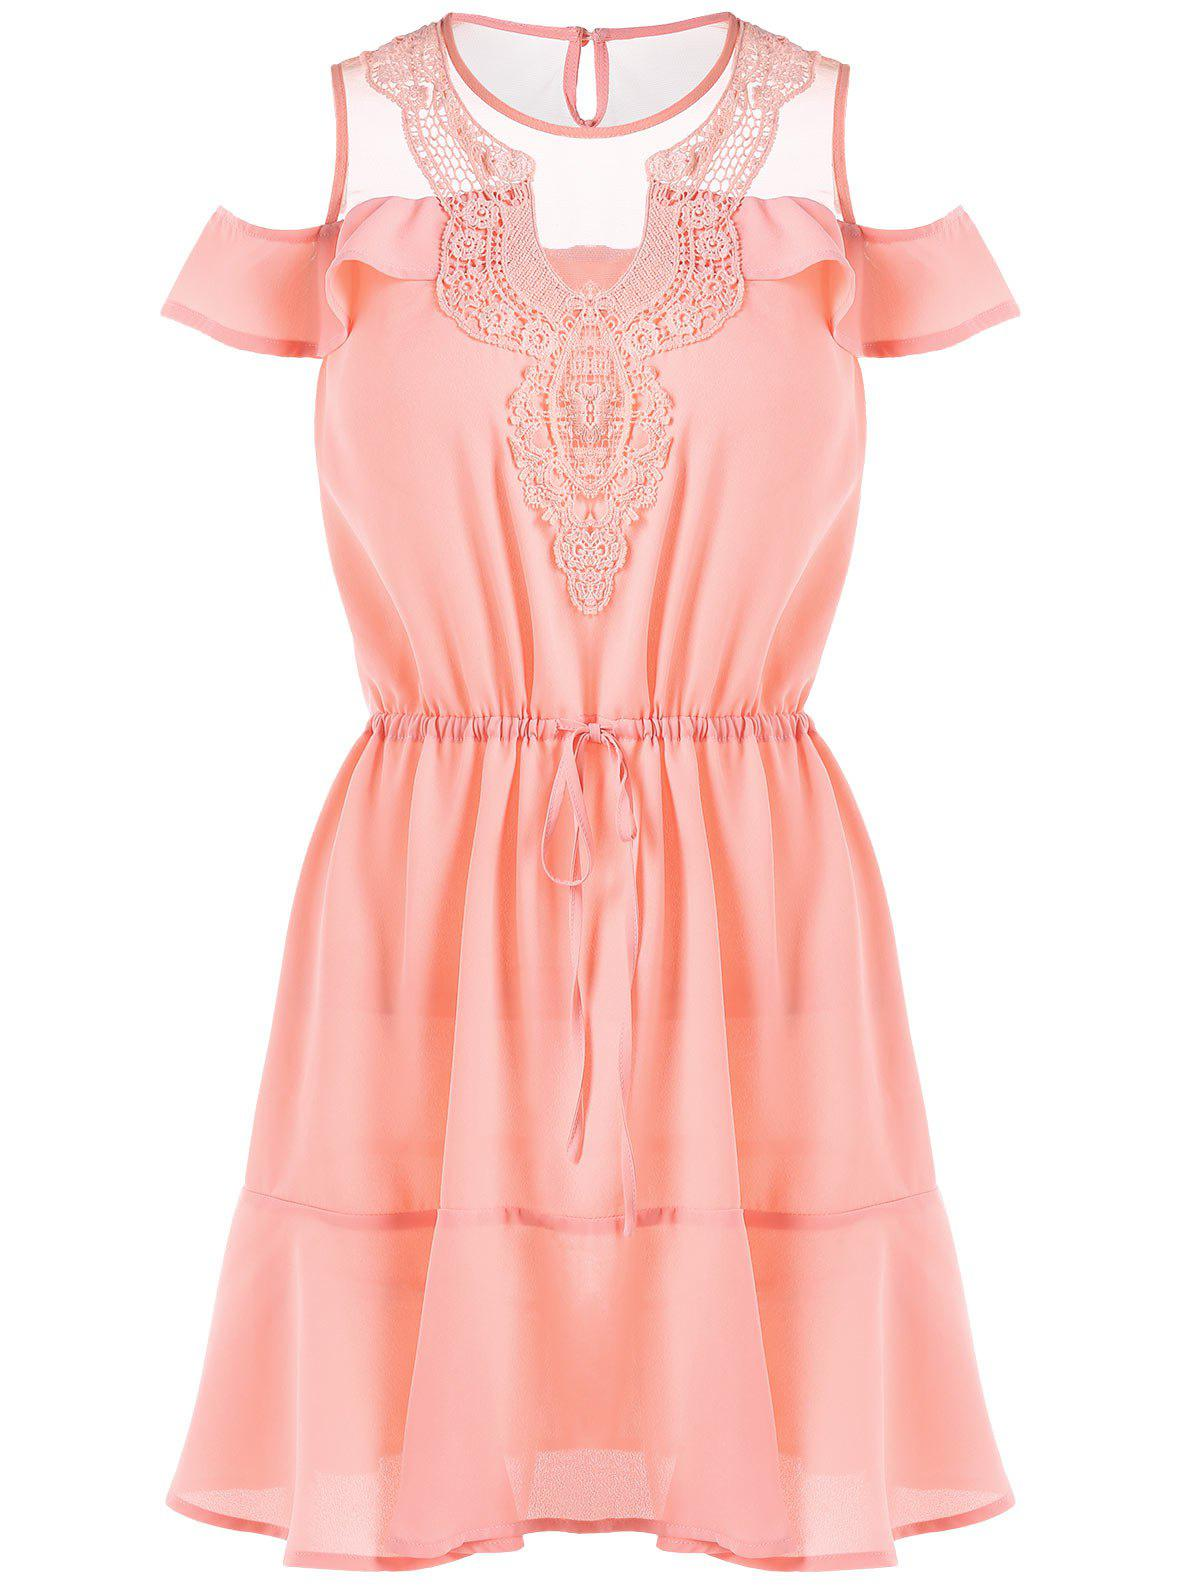 Ruffle Trim Crochet Panel Fluted Dress - LIGHT PINK M